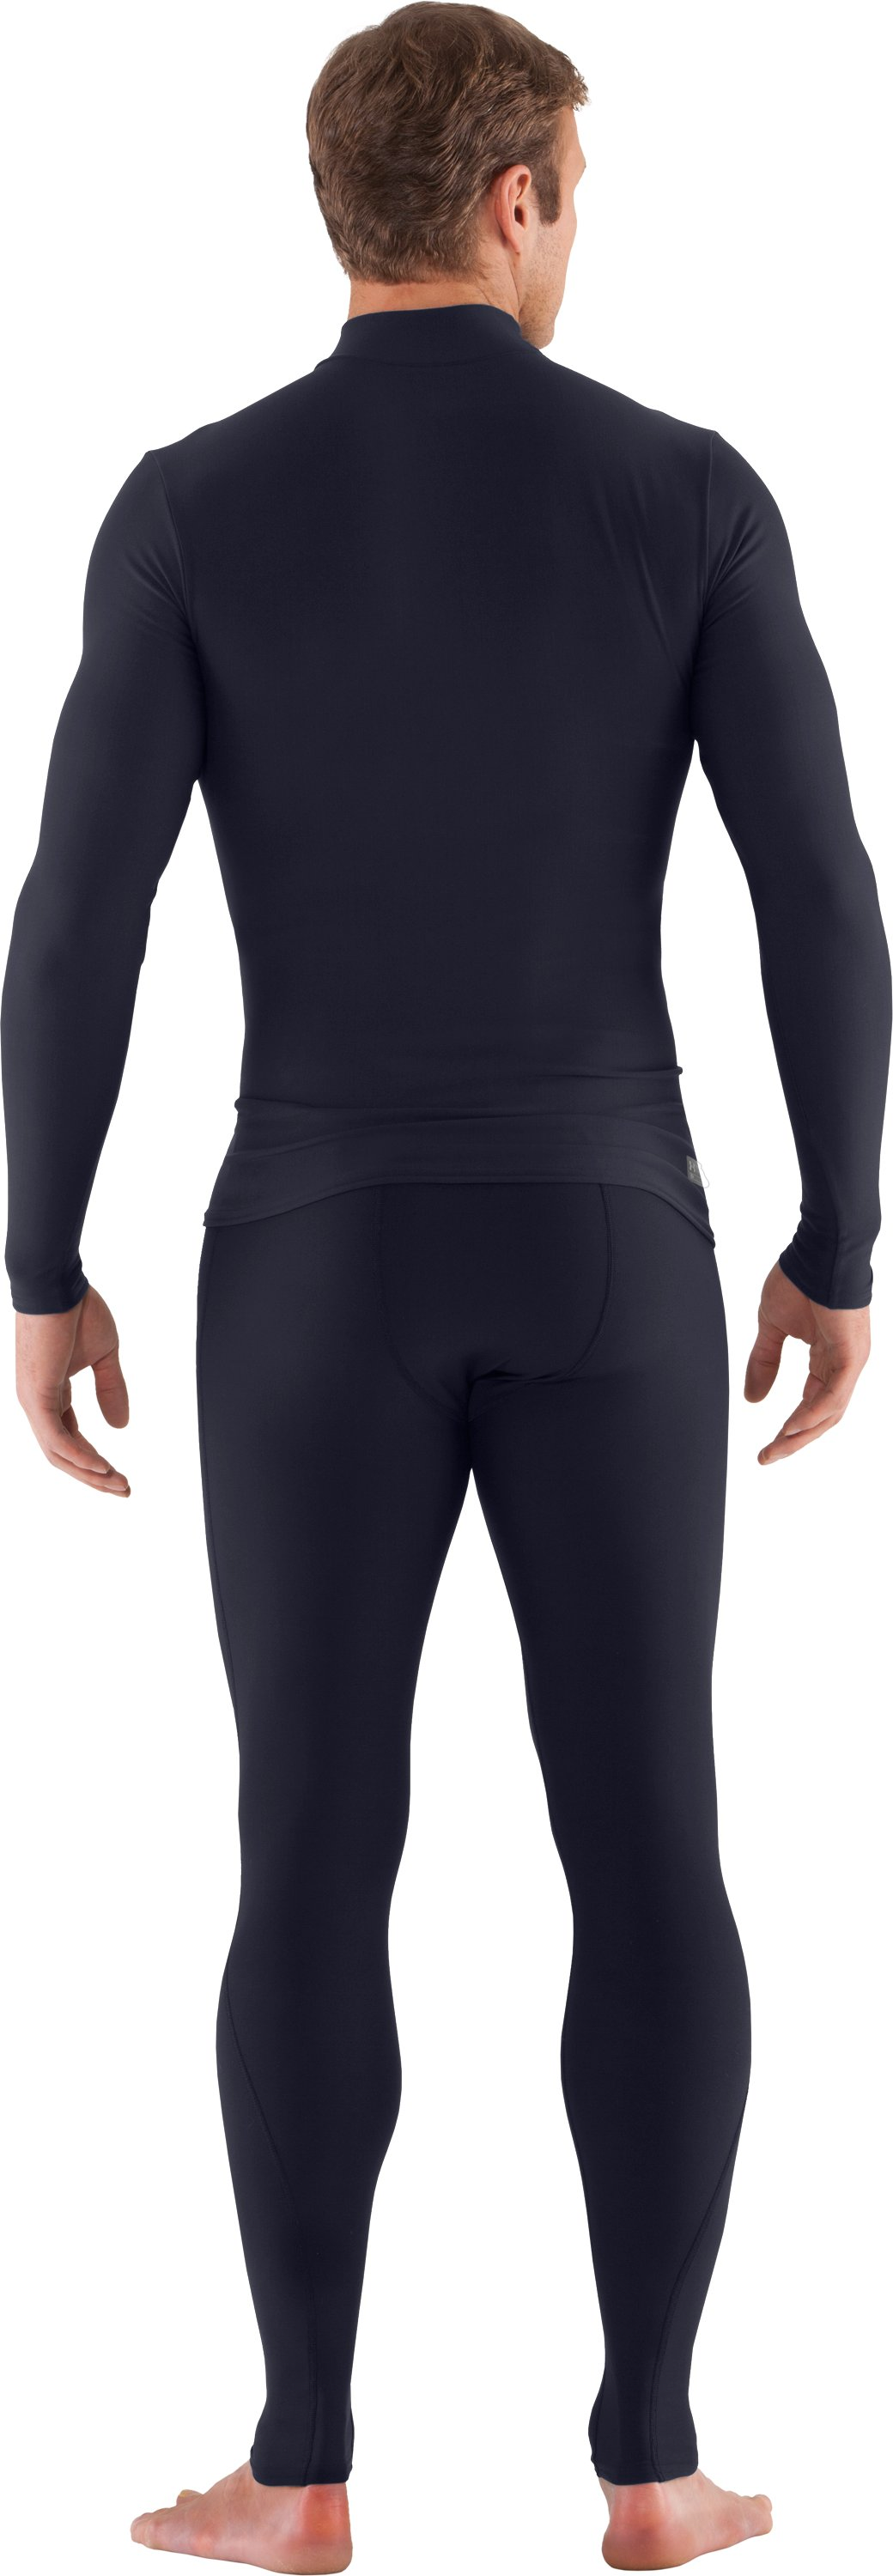 Men's Tactical ColdGear® Compression Leggings, Dark Navy Blue , Back